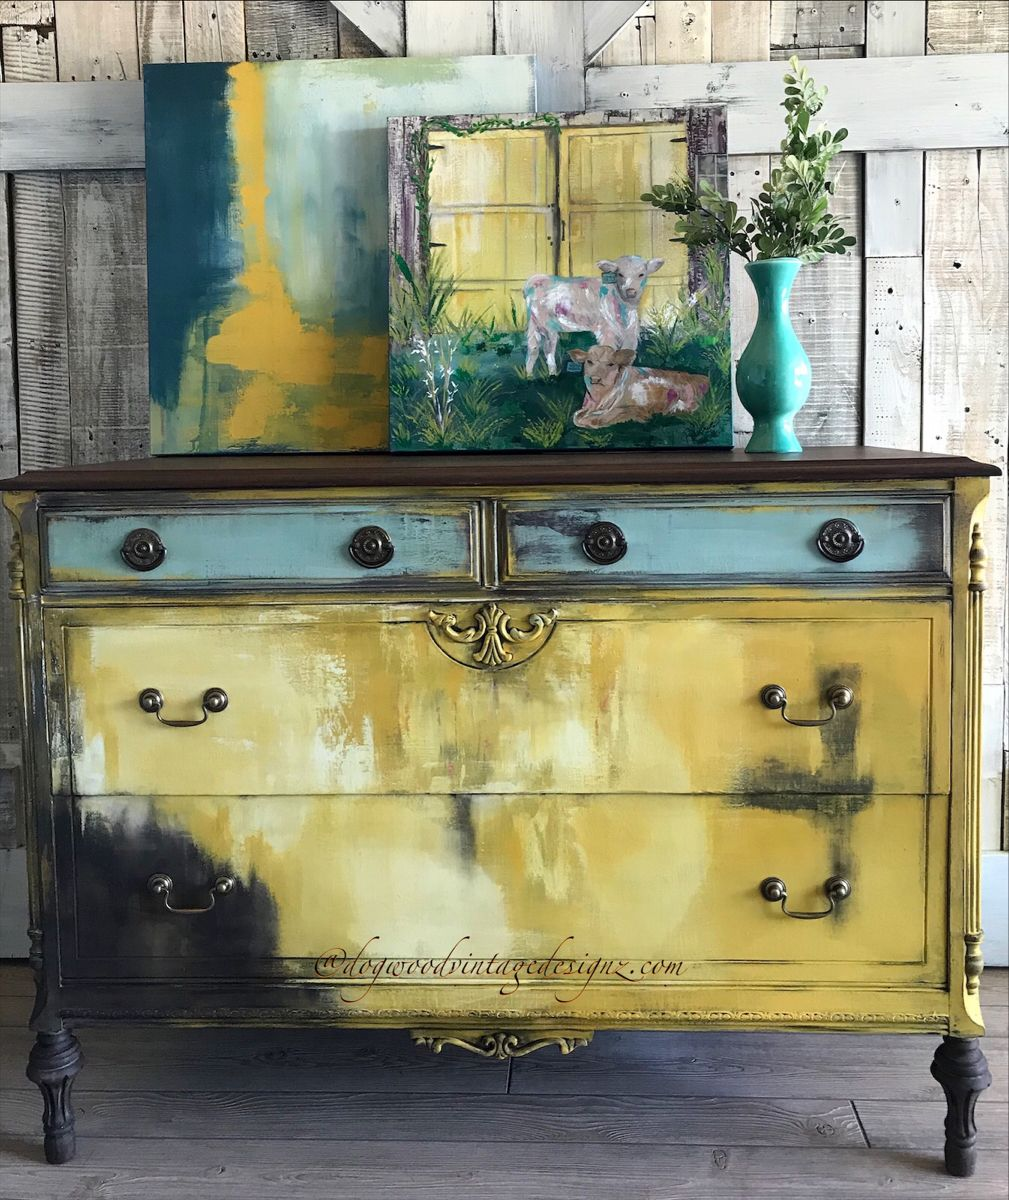 #sold #furnitureartist #interiordesigner #diylove #beautifulhome #layered #vintage furniture #ilovetopaint #modern #romantic #mauve #moderndecor #retro #repurposedvintage #patina #bohoismyjam #bohoglam #furnitureflip #wiseowlpaint #anniesloanhome #pinkish #blush #beautifulhome #textured #saltwash #green